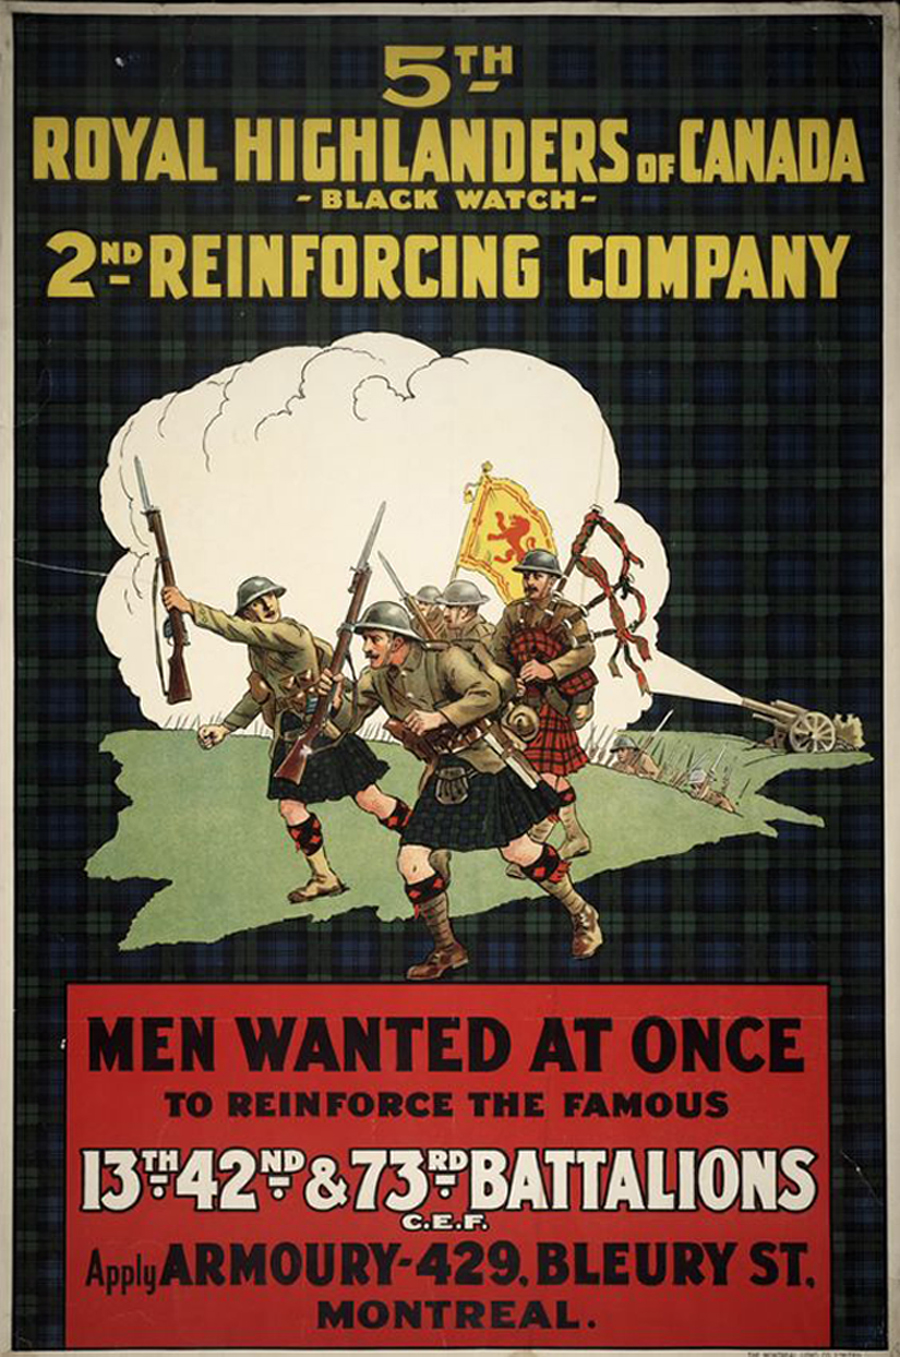 A recruiting poster for the Royal Highlanders of Canada (Black Watch). Thomas Dinesen (right) enlisted with the 42nd Battalion in 1917, which fought as part of the 7th Infantry Brigade, 3rd Canadian Division in France and Flanders until the end of the war.